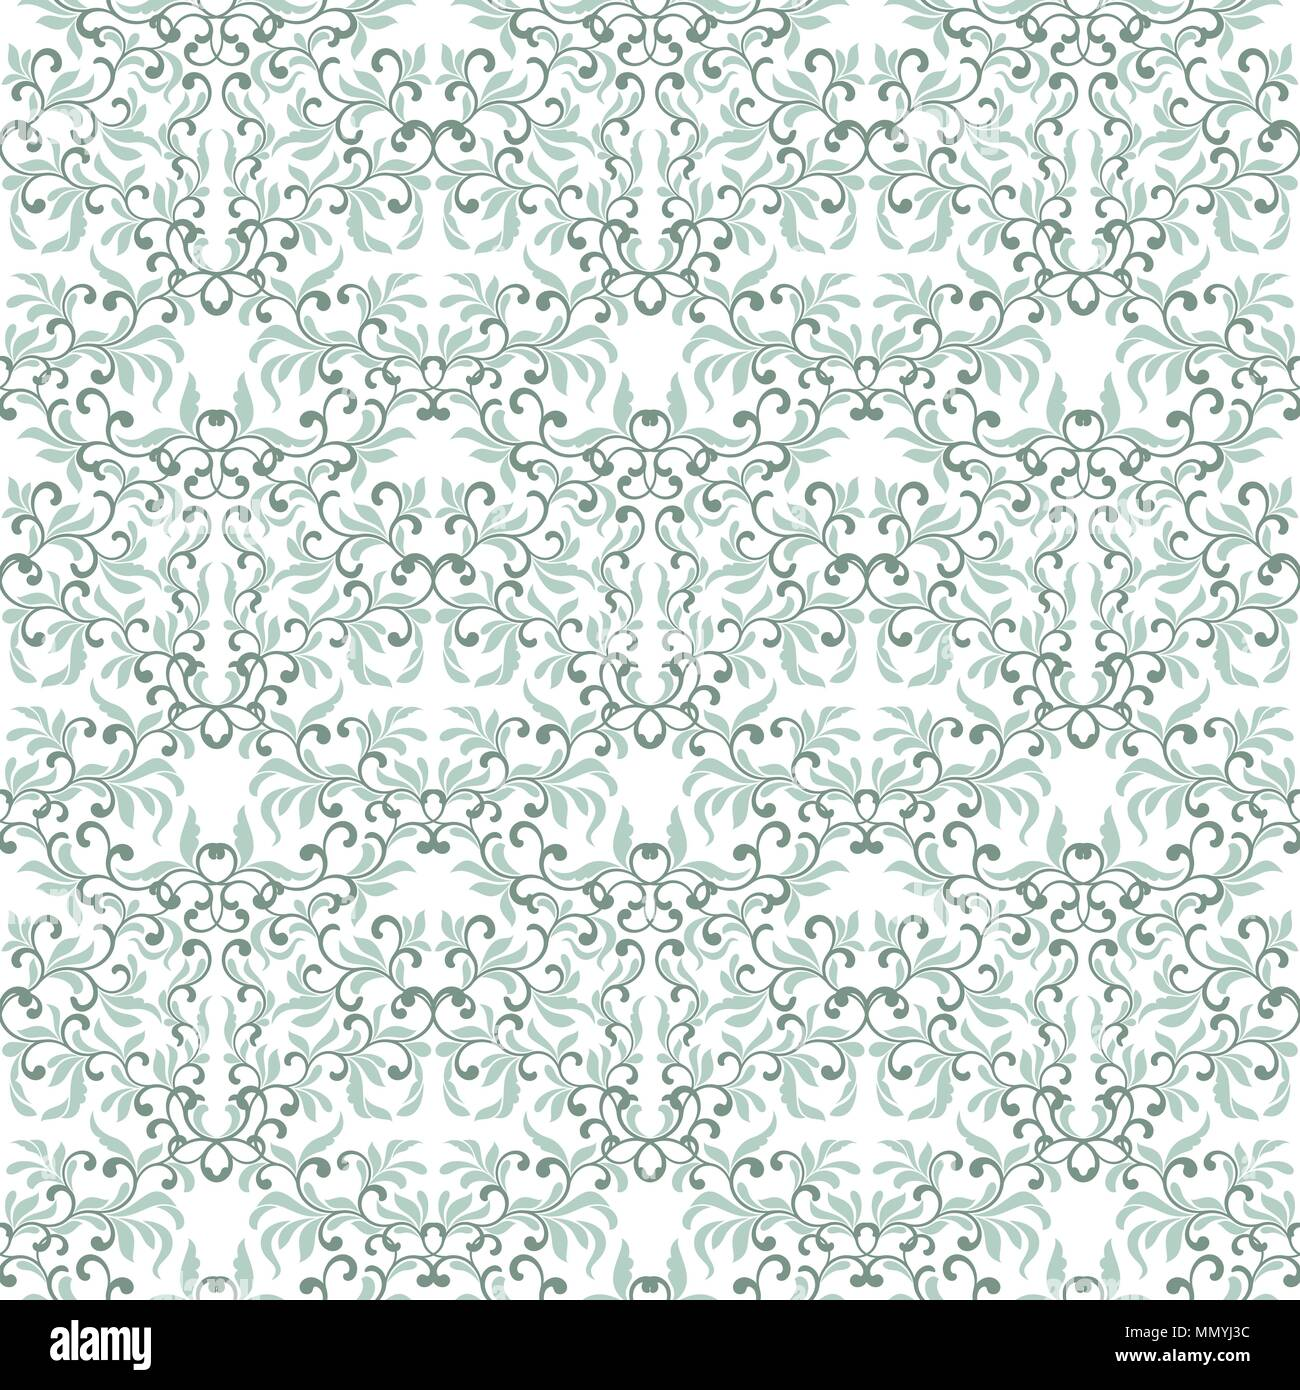 Gentle seamless pattern. Tracery of swirls and decorative leaves isolated on a white background. Vintage style. It can be used for printing on fabric, - Stock Vector